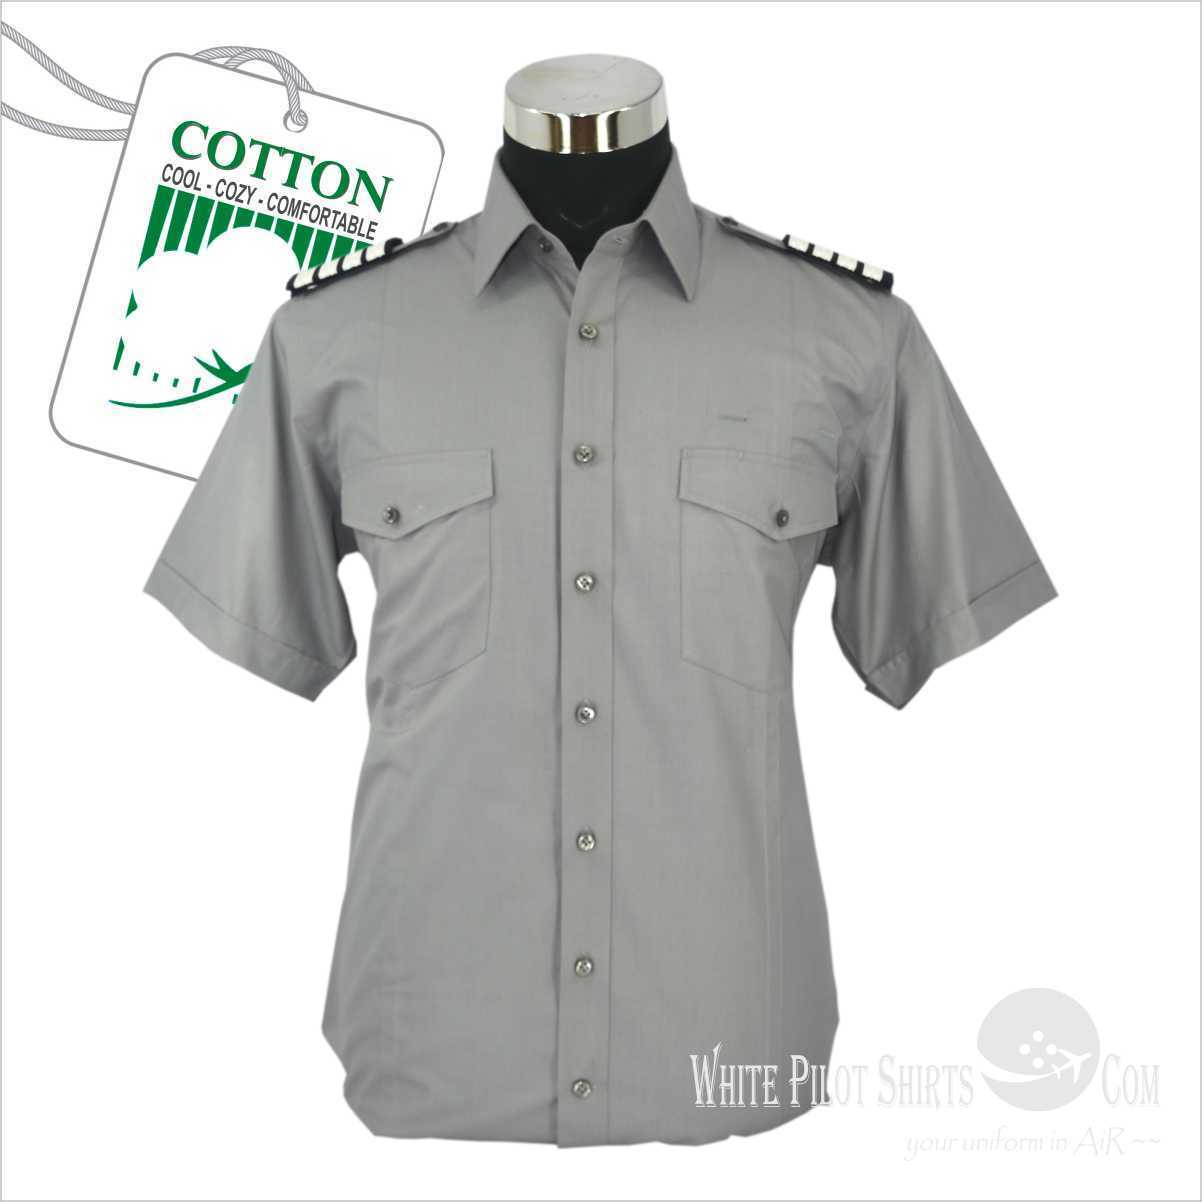 Grau Pilot Shirts for Men 100% Cotton Aviator Uniforms Pilot supplies Aviation